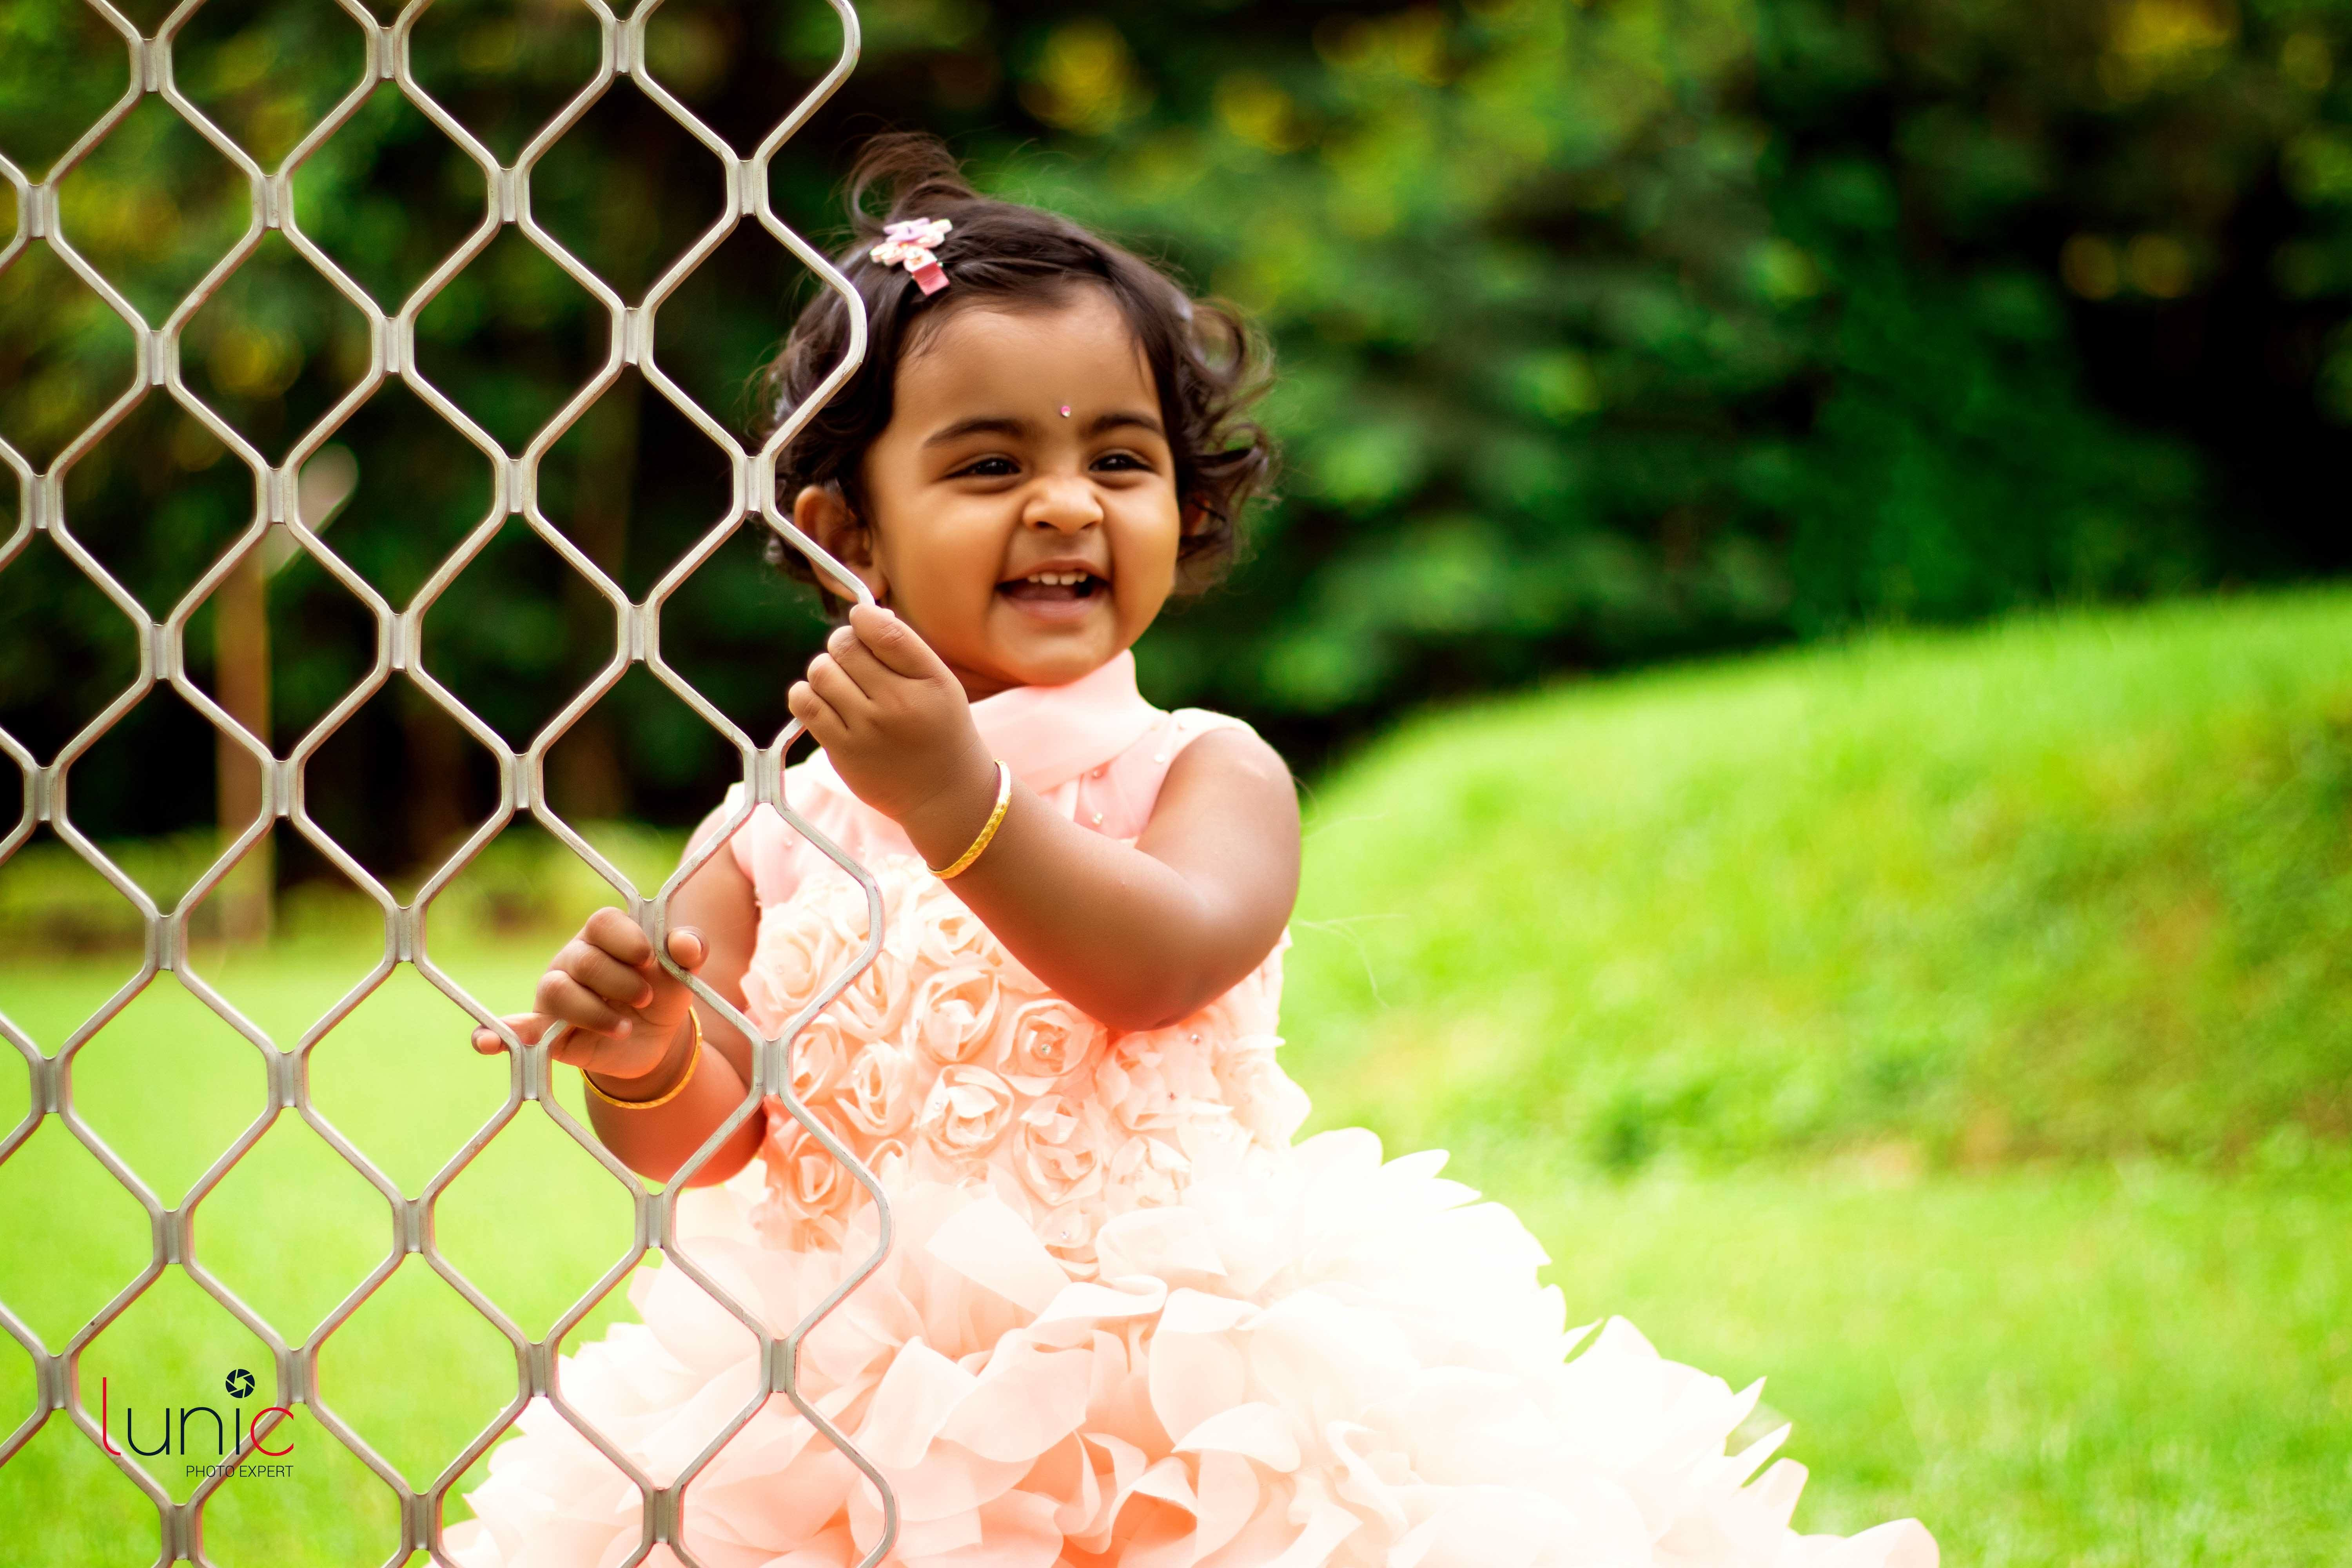 cute baby pose with pink dress